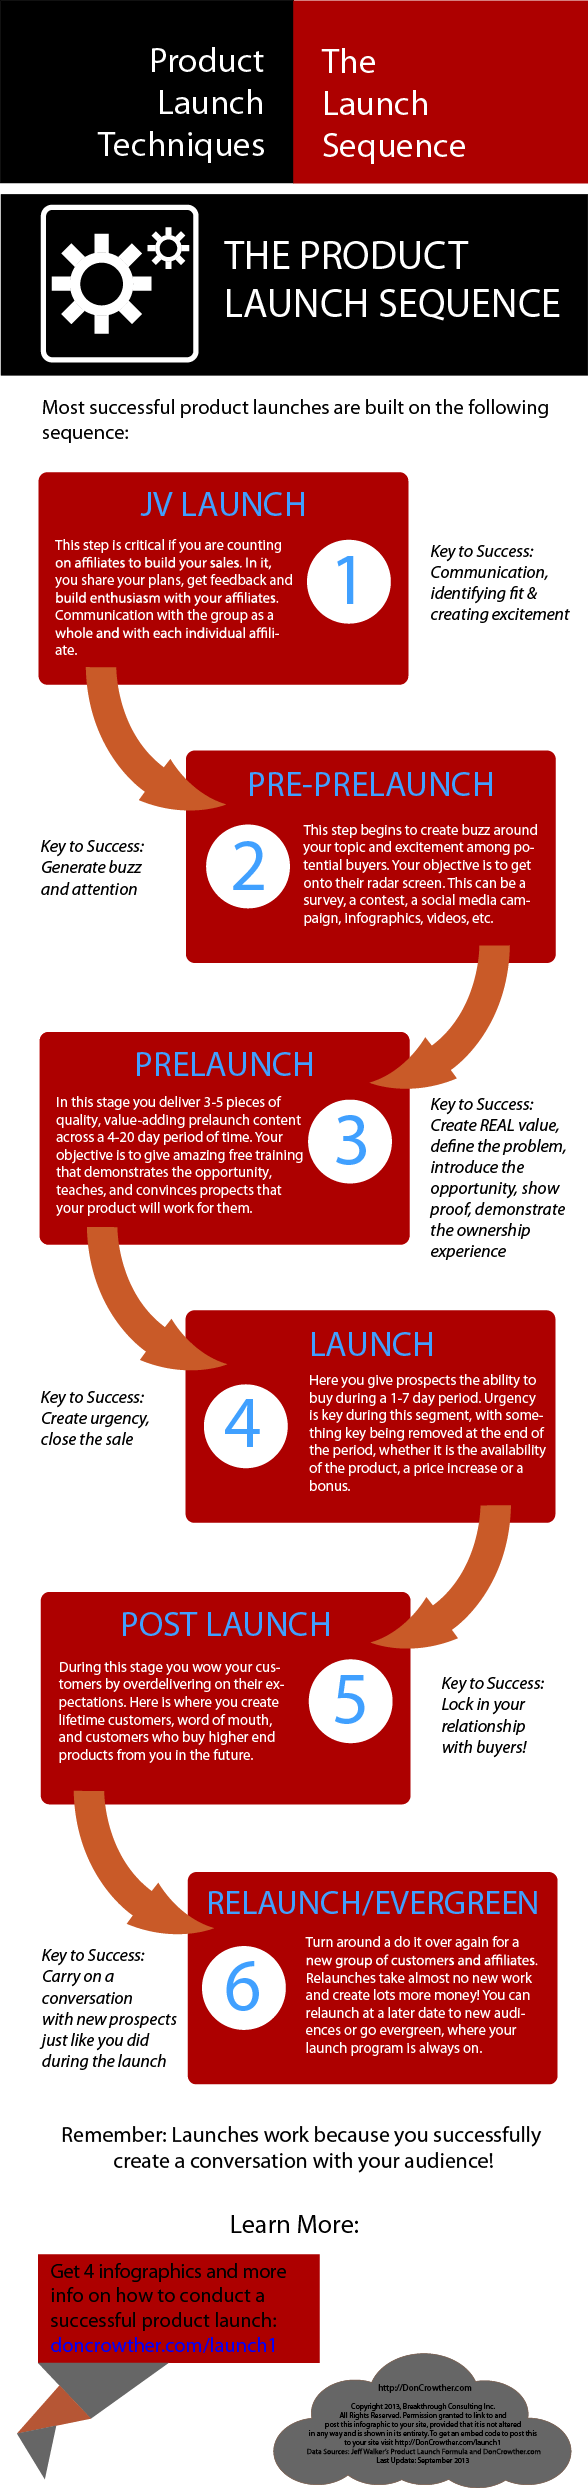 Infographic - The Product Launch Sequence